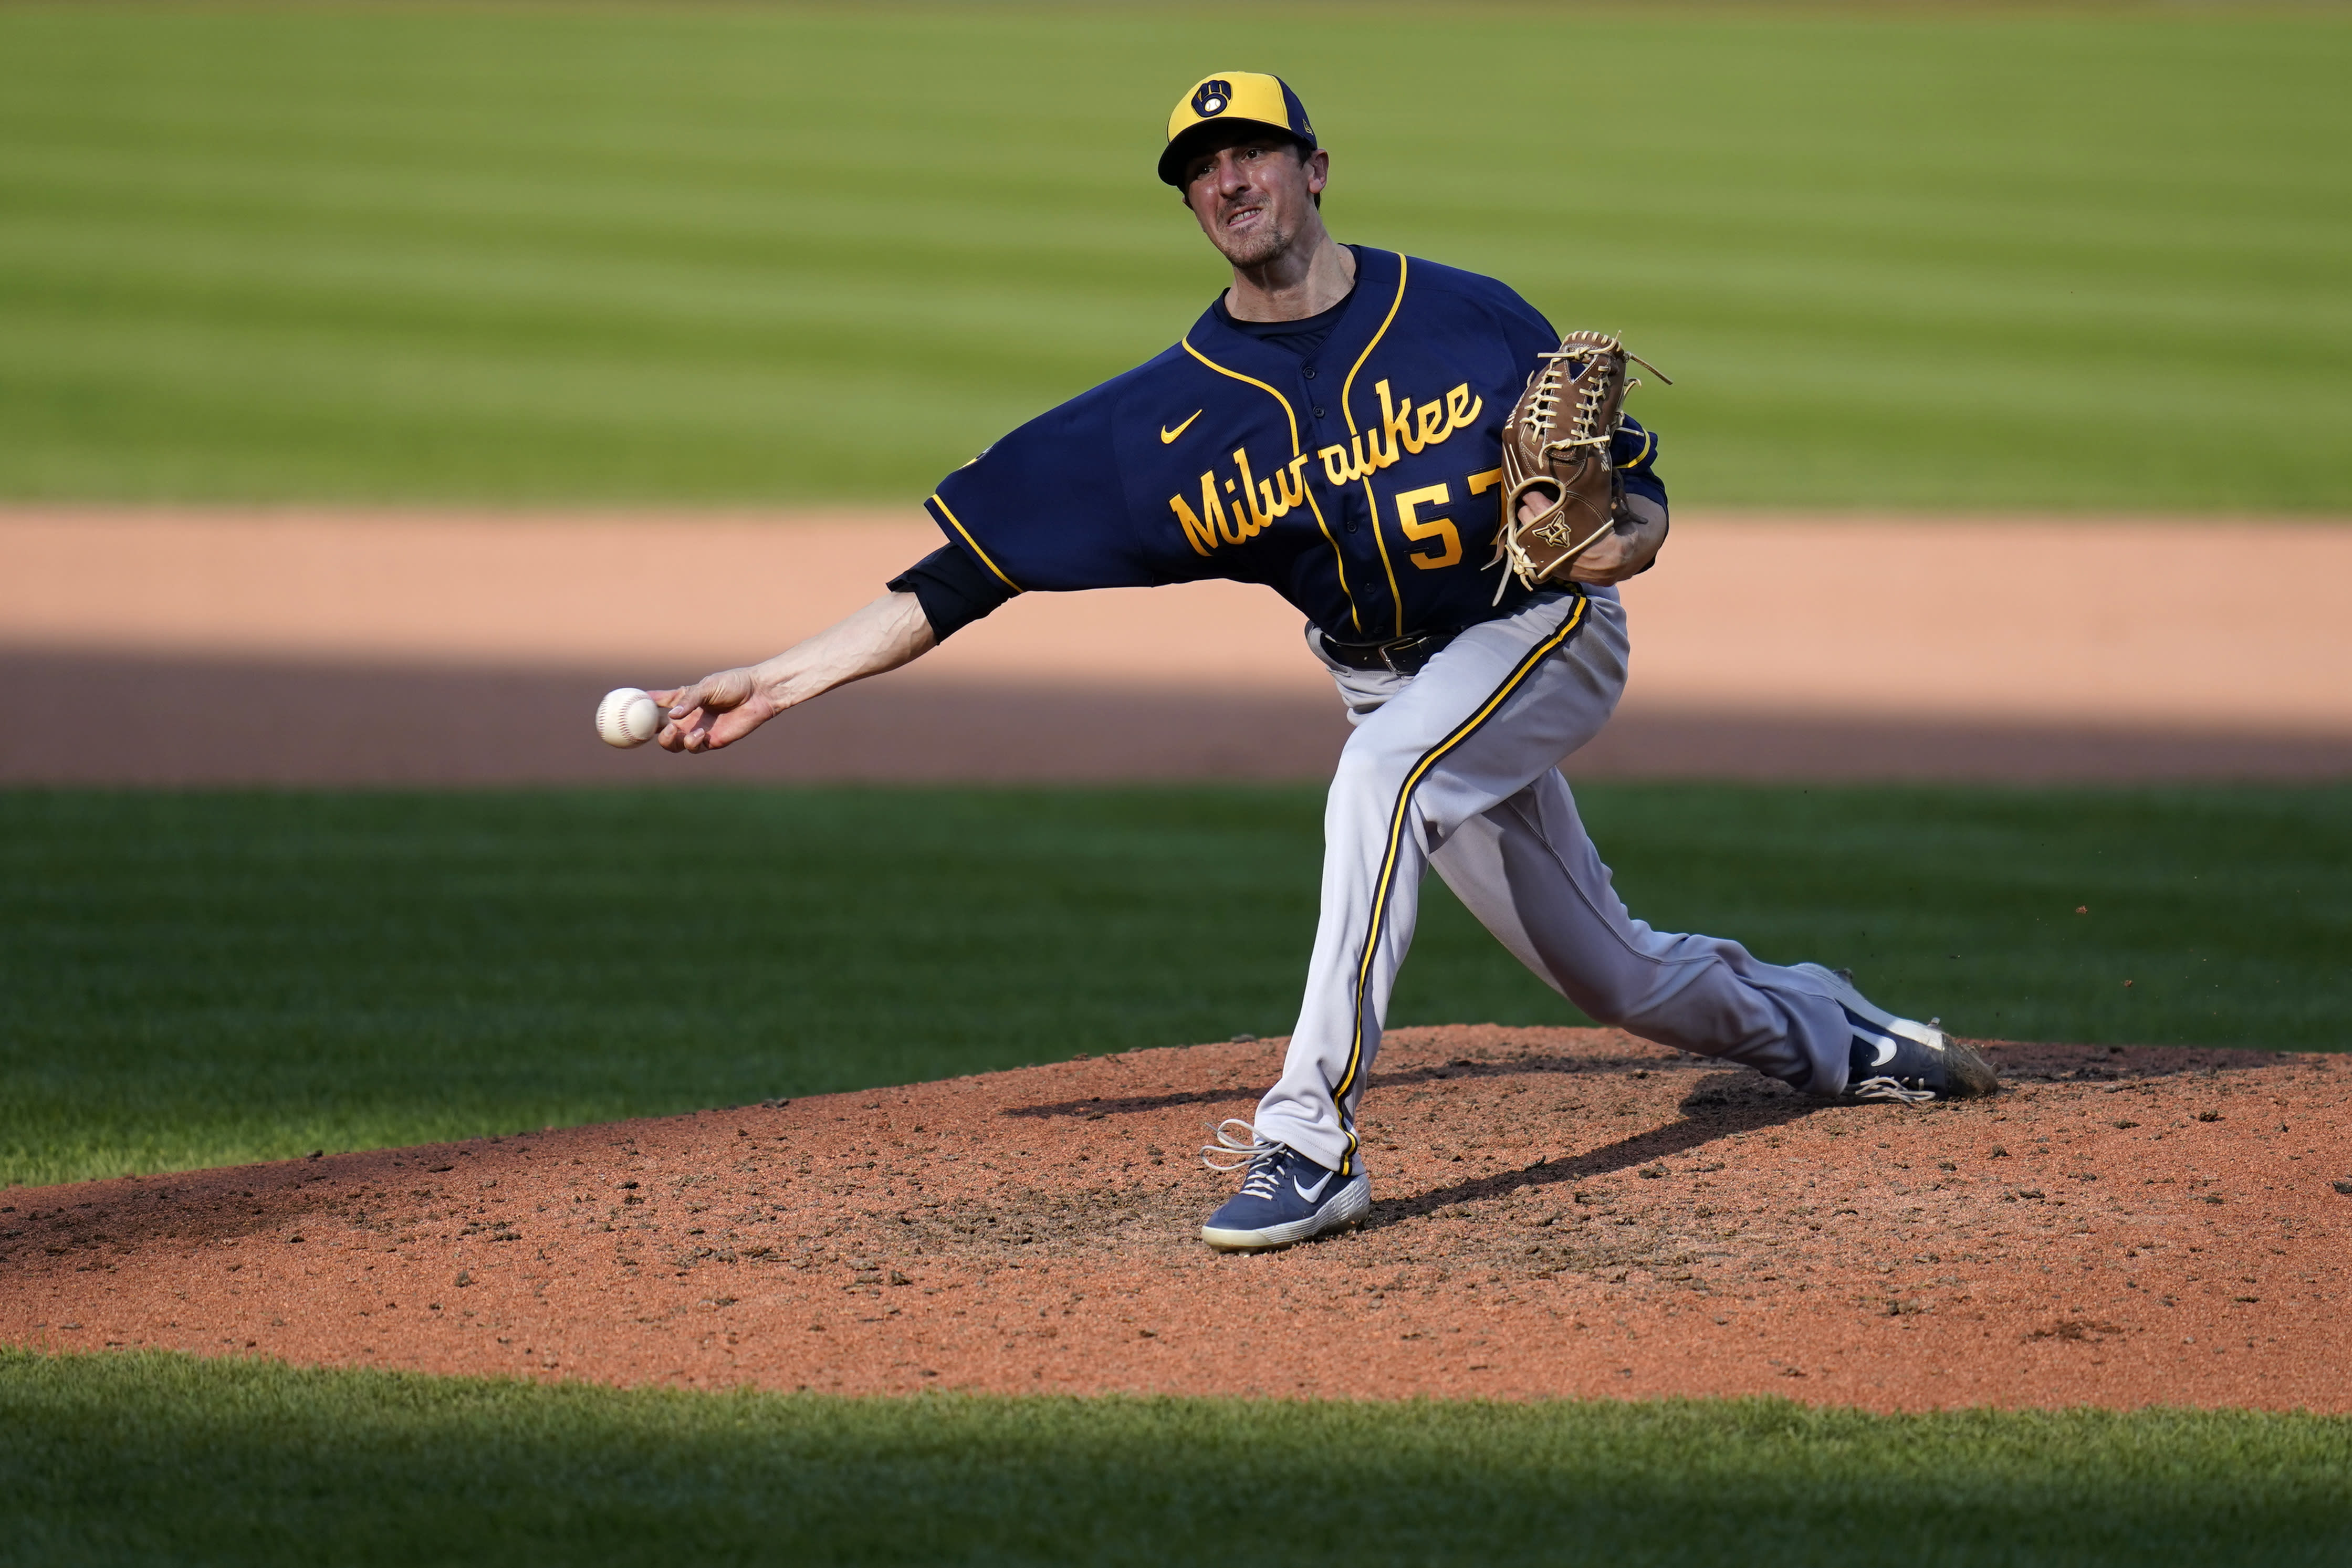 Milwaukee Brewers relief pitcher Eric Yardley throws during the seventh inning of a baseball game against the St. Louis Cardinals Sunday, Sept. 27, 2020, in St. Louis. (AP Photo/Jeff Roberson)